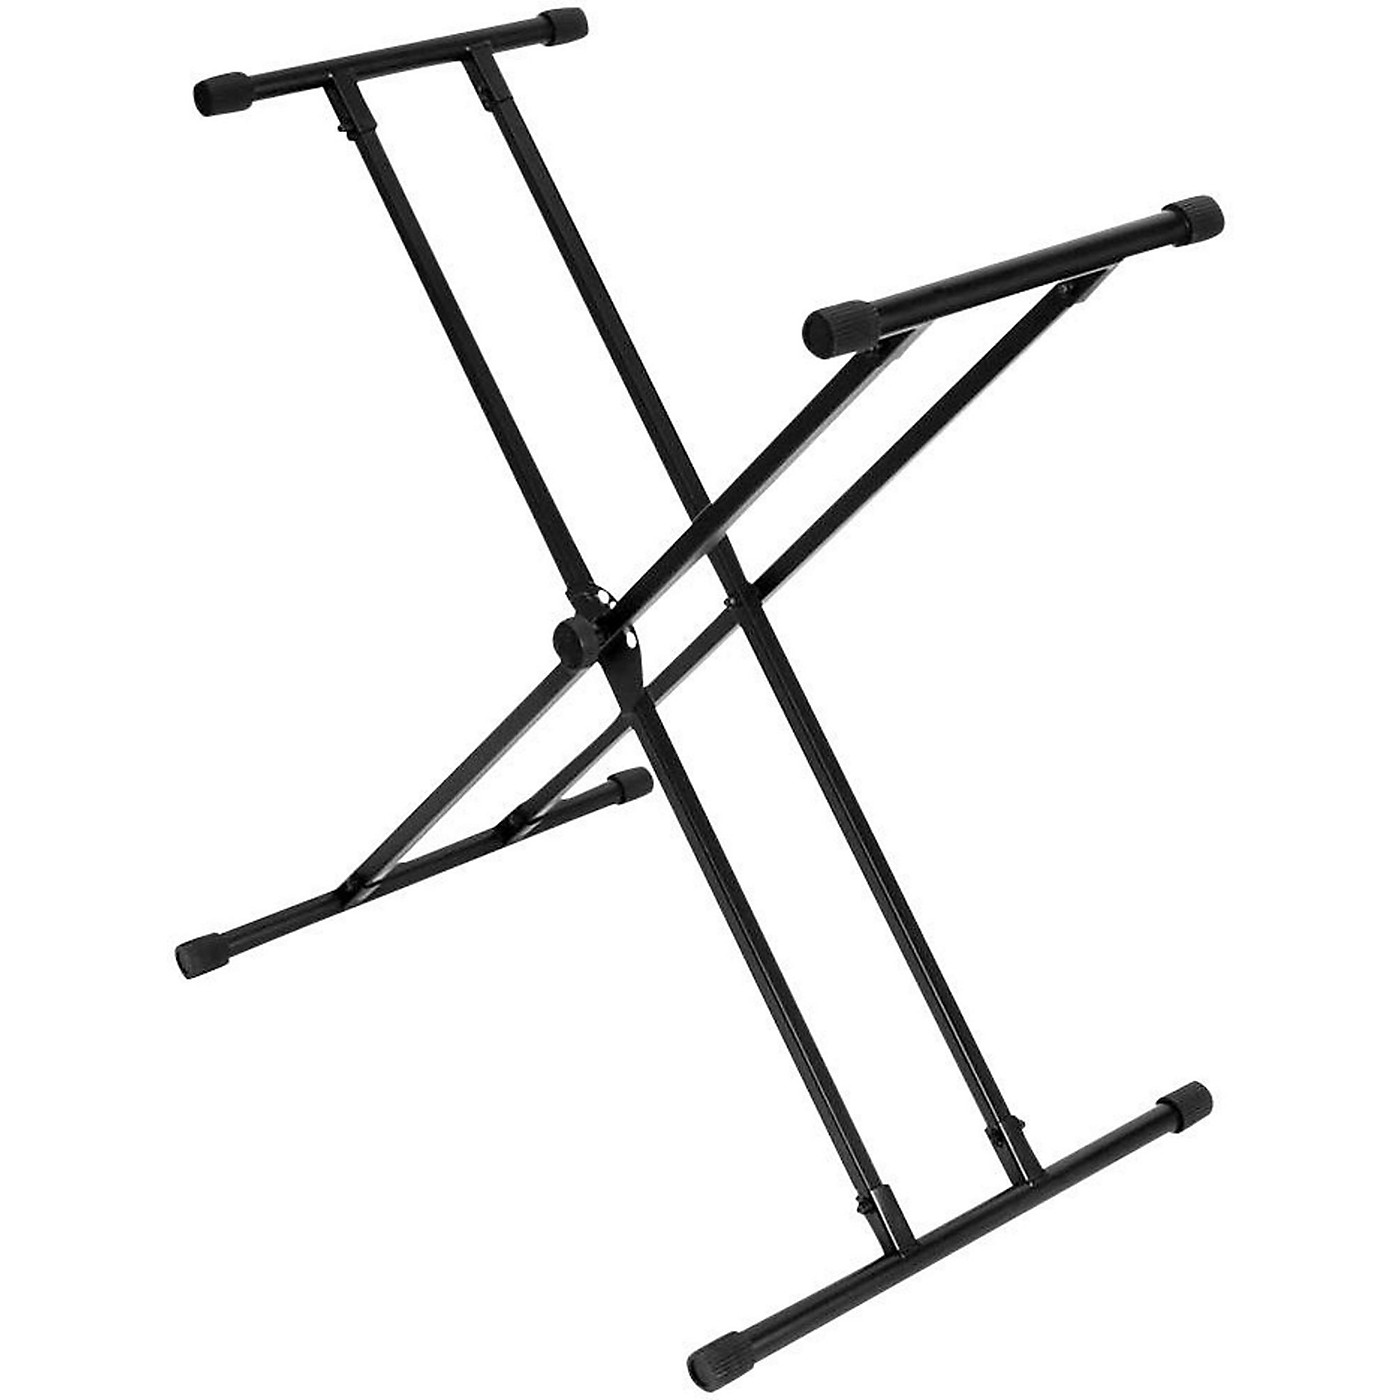 On-Stage Double-X Bullet Nose Keyboard Stand Wth Lok-Tight Construction thumbnail